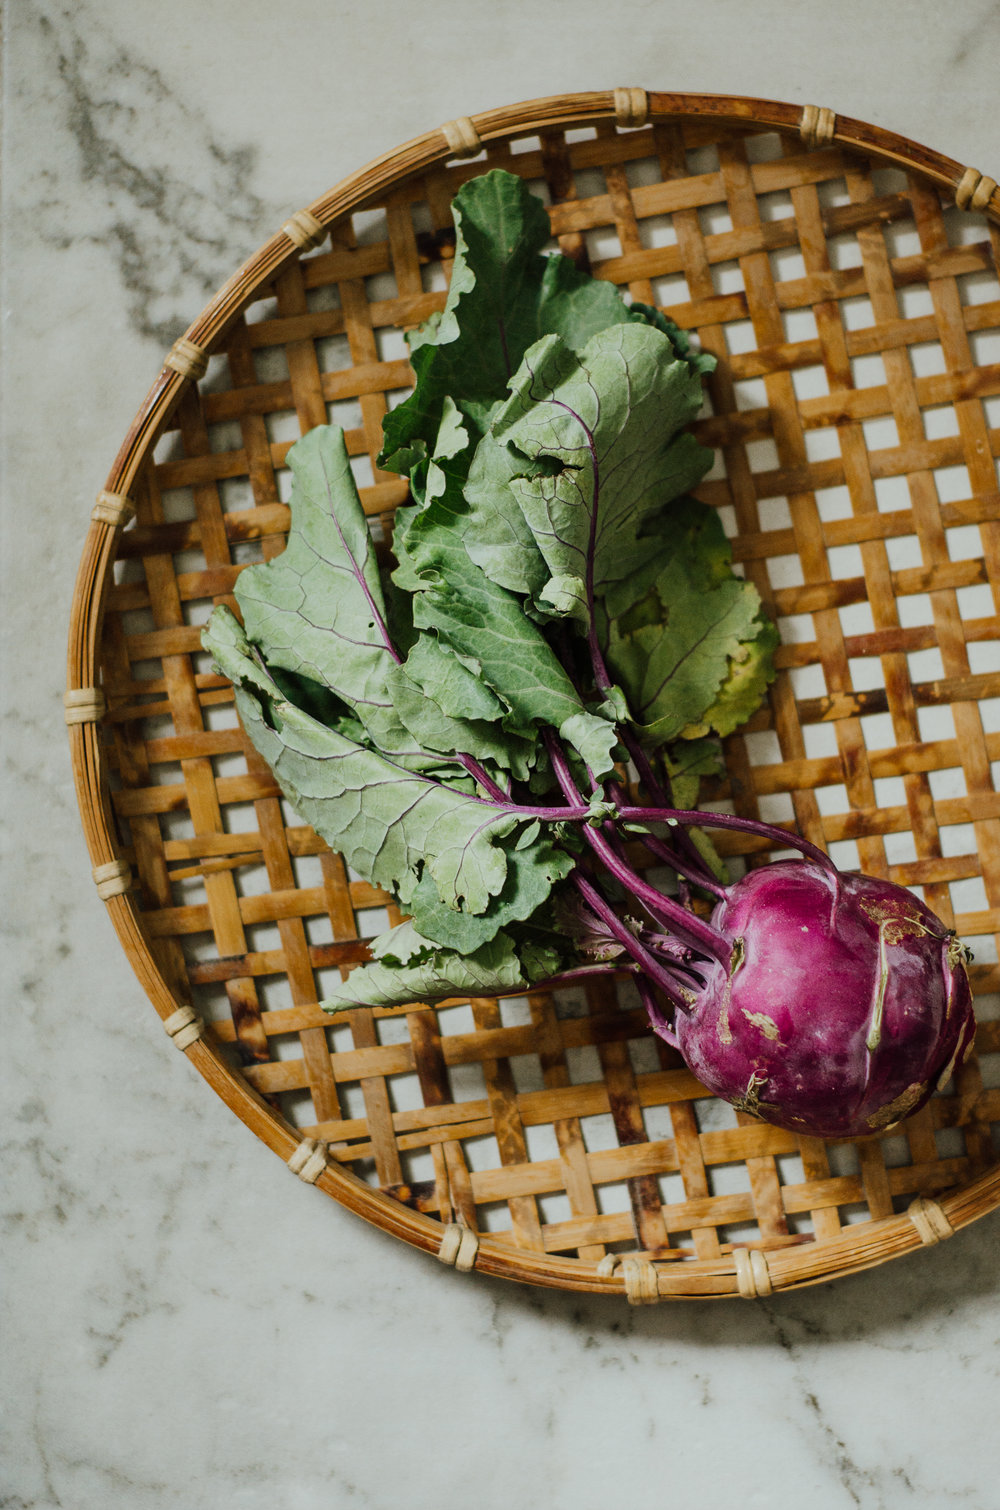 kohlrabi, kale & carrot summer bowl - the nomadic wife - riverbend gardens